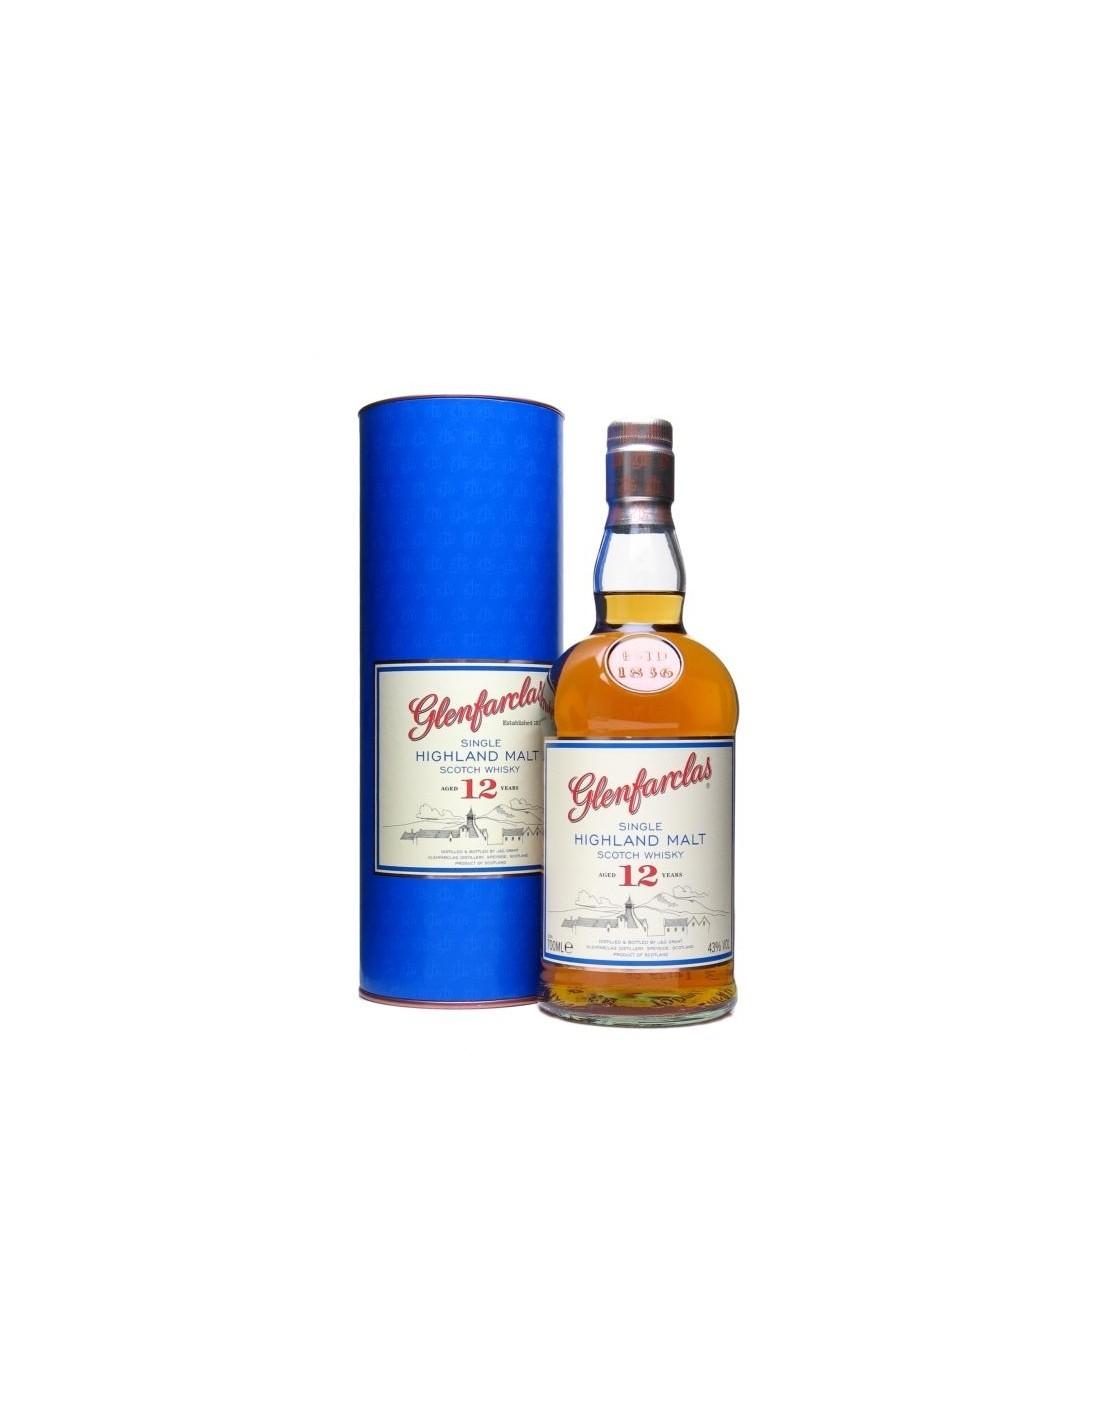 Whisky Single Malt Glenfarclas, 12 ani, 43% alc., 0.7L, cutie, Scotia